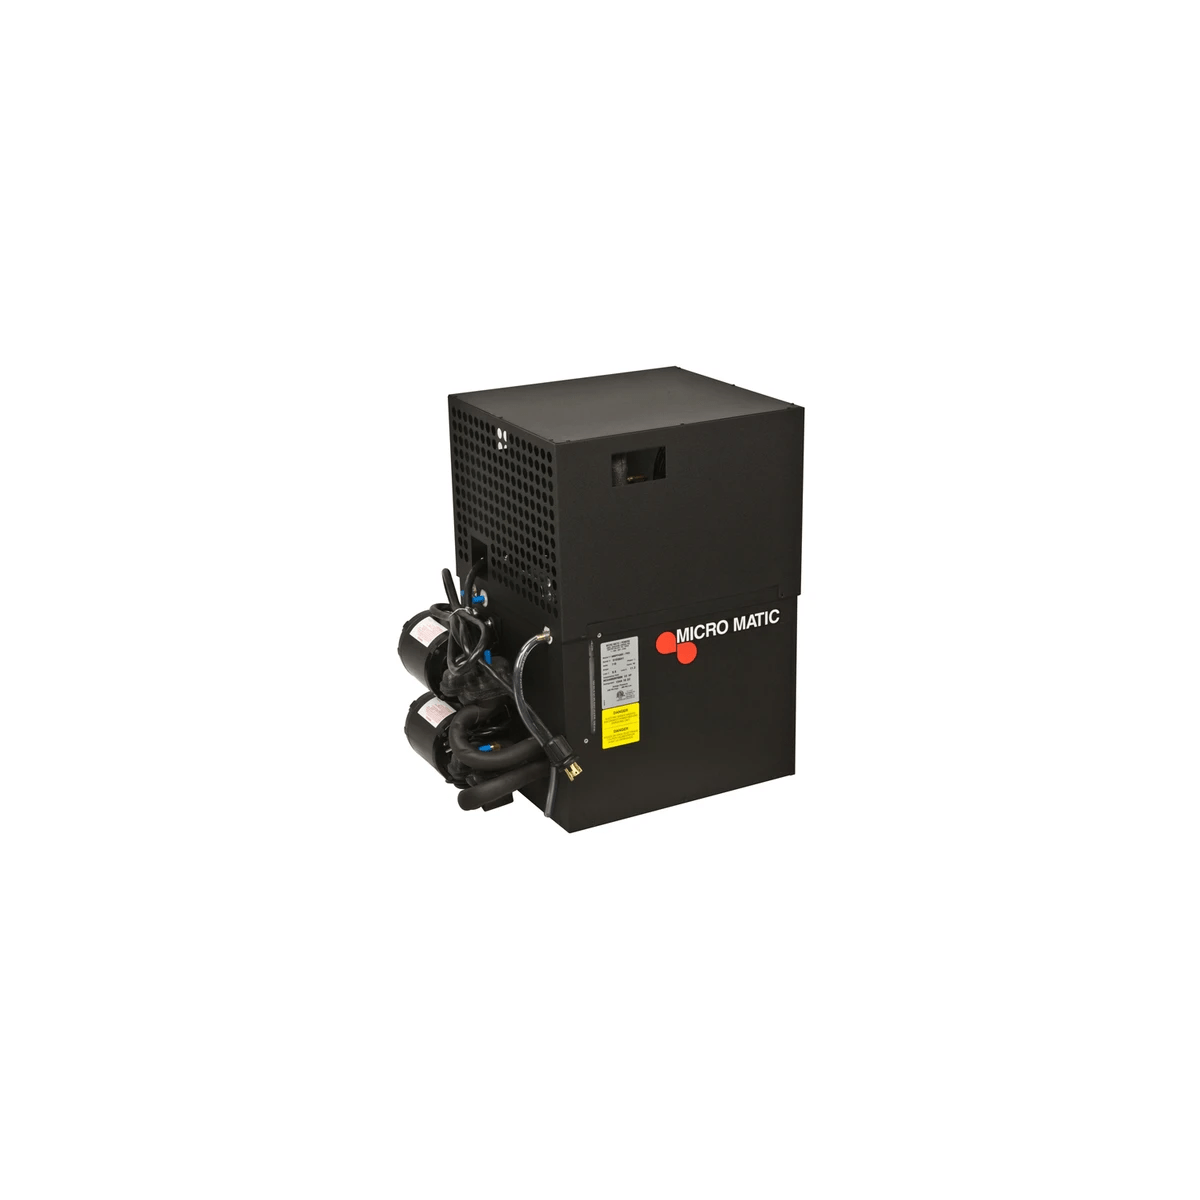 hight resolution of micromatic mmpp4302 pkg pro line 1 2 hp glycol power pack up to 250 ft run 2 pumps motors